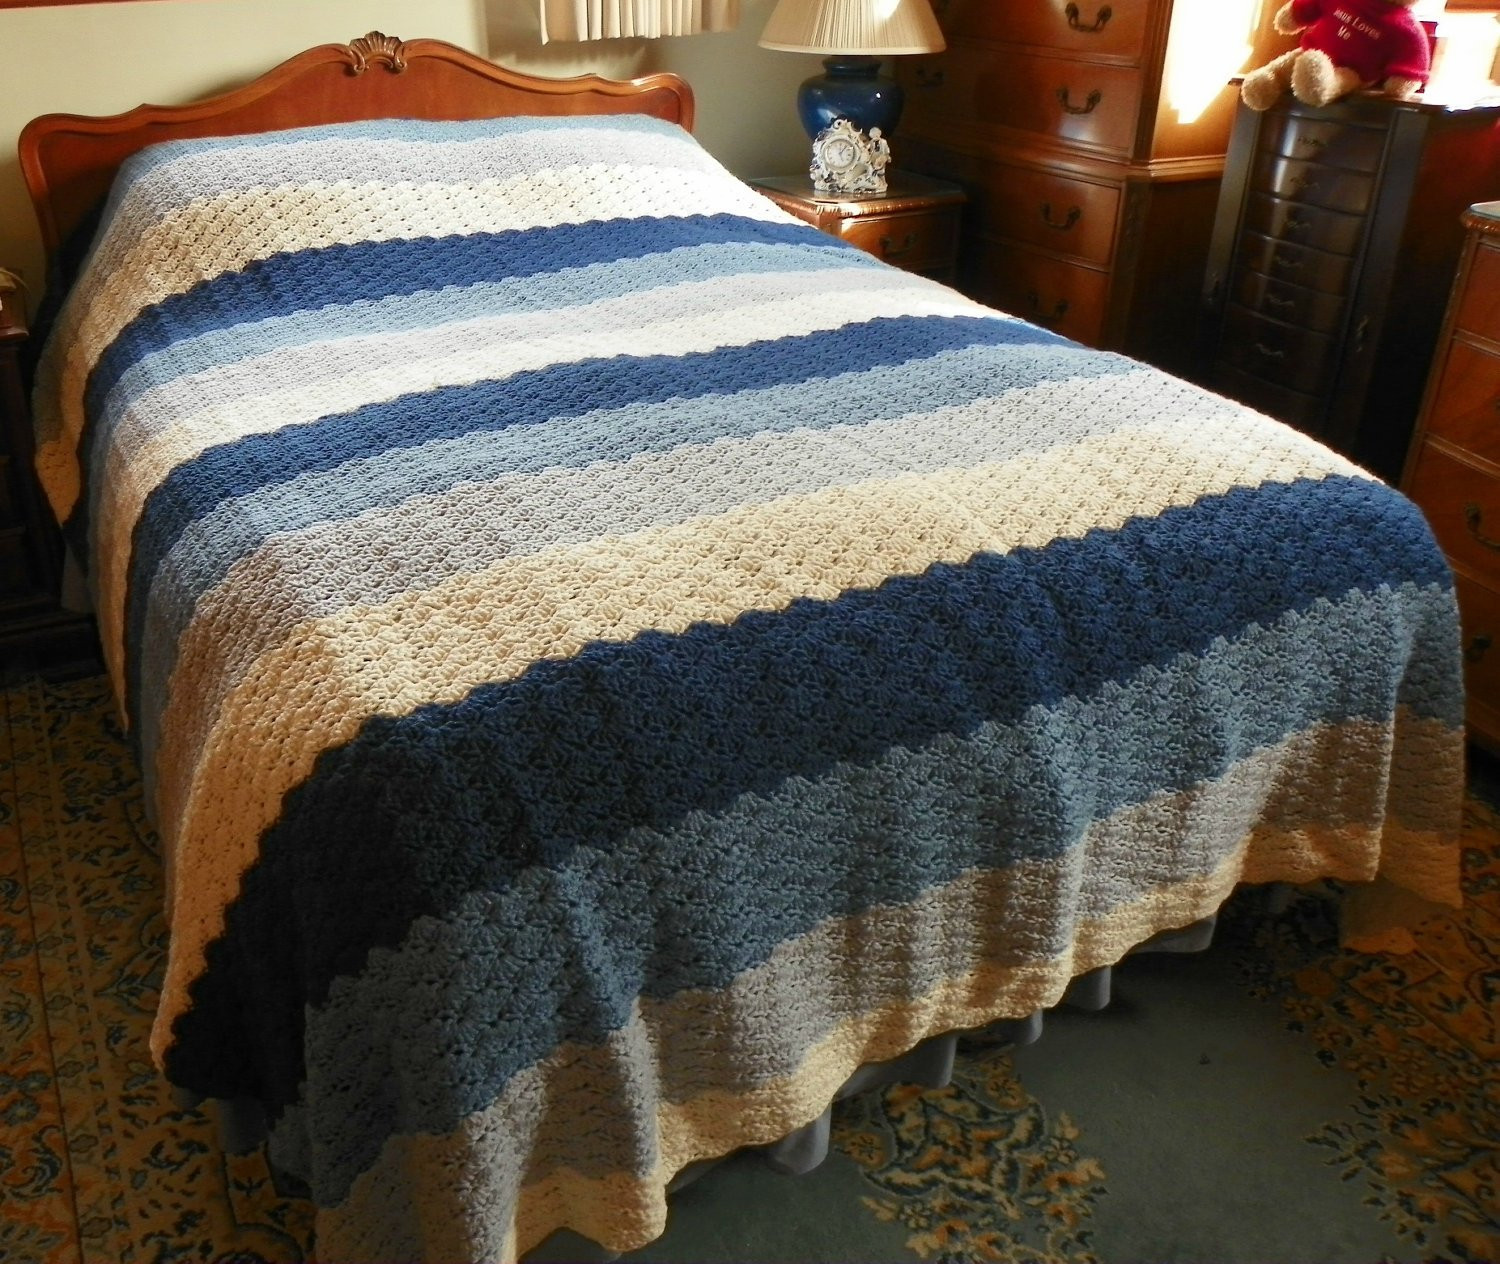 Fresh Queen Sized Shell Pattern Crochet Bedspread Free Crochet Bedspread Patterns Of Unique 48 Photos Free Crochet Bedspread Patterns